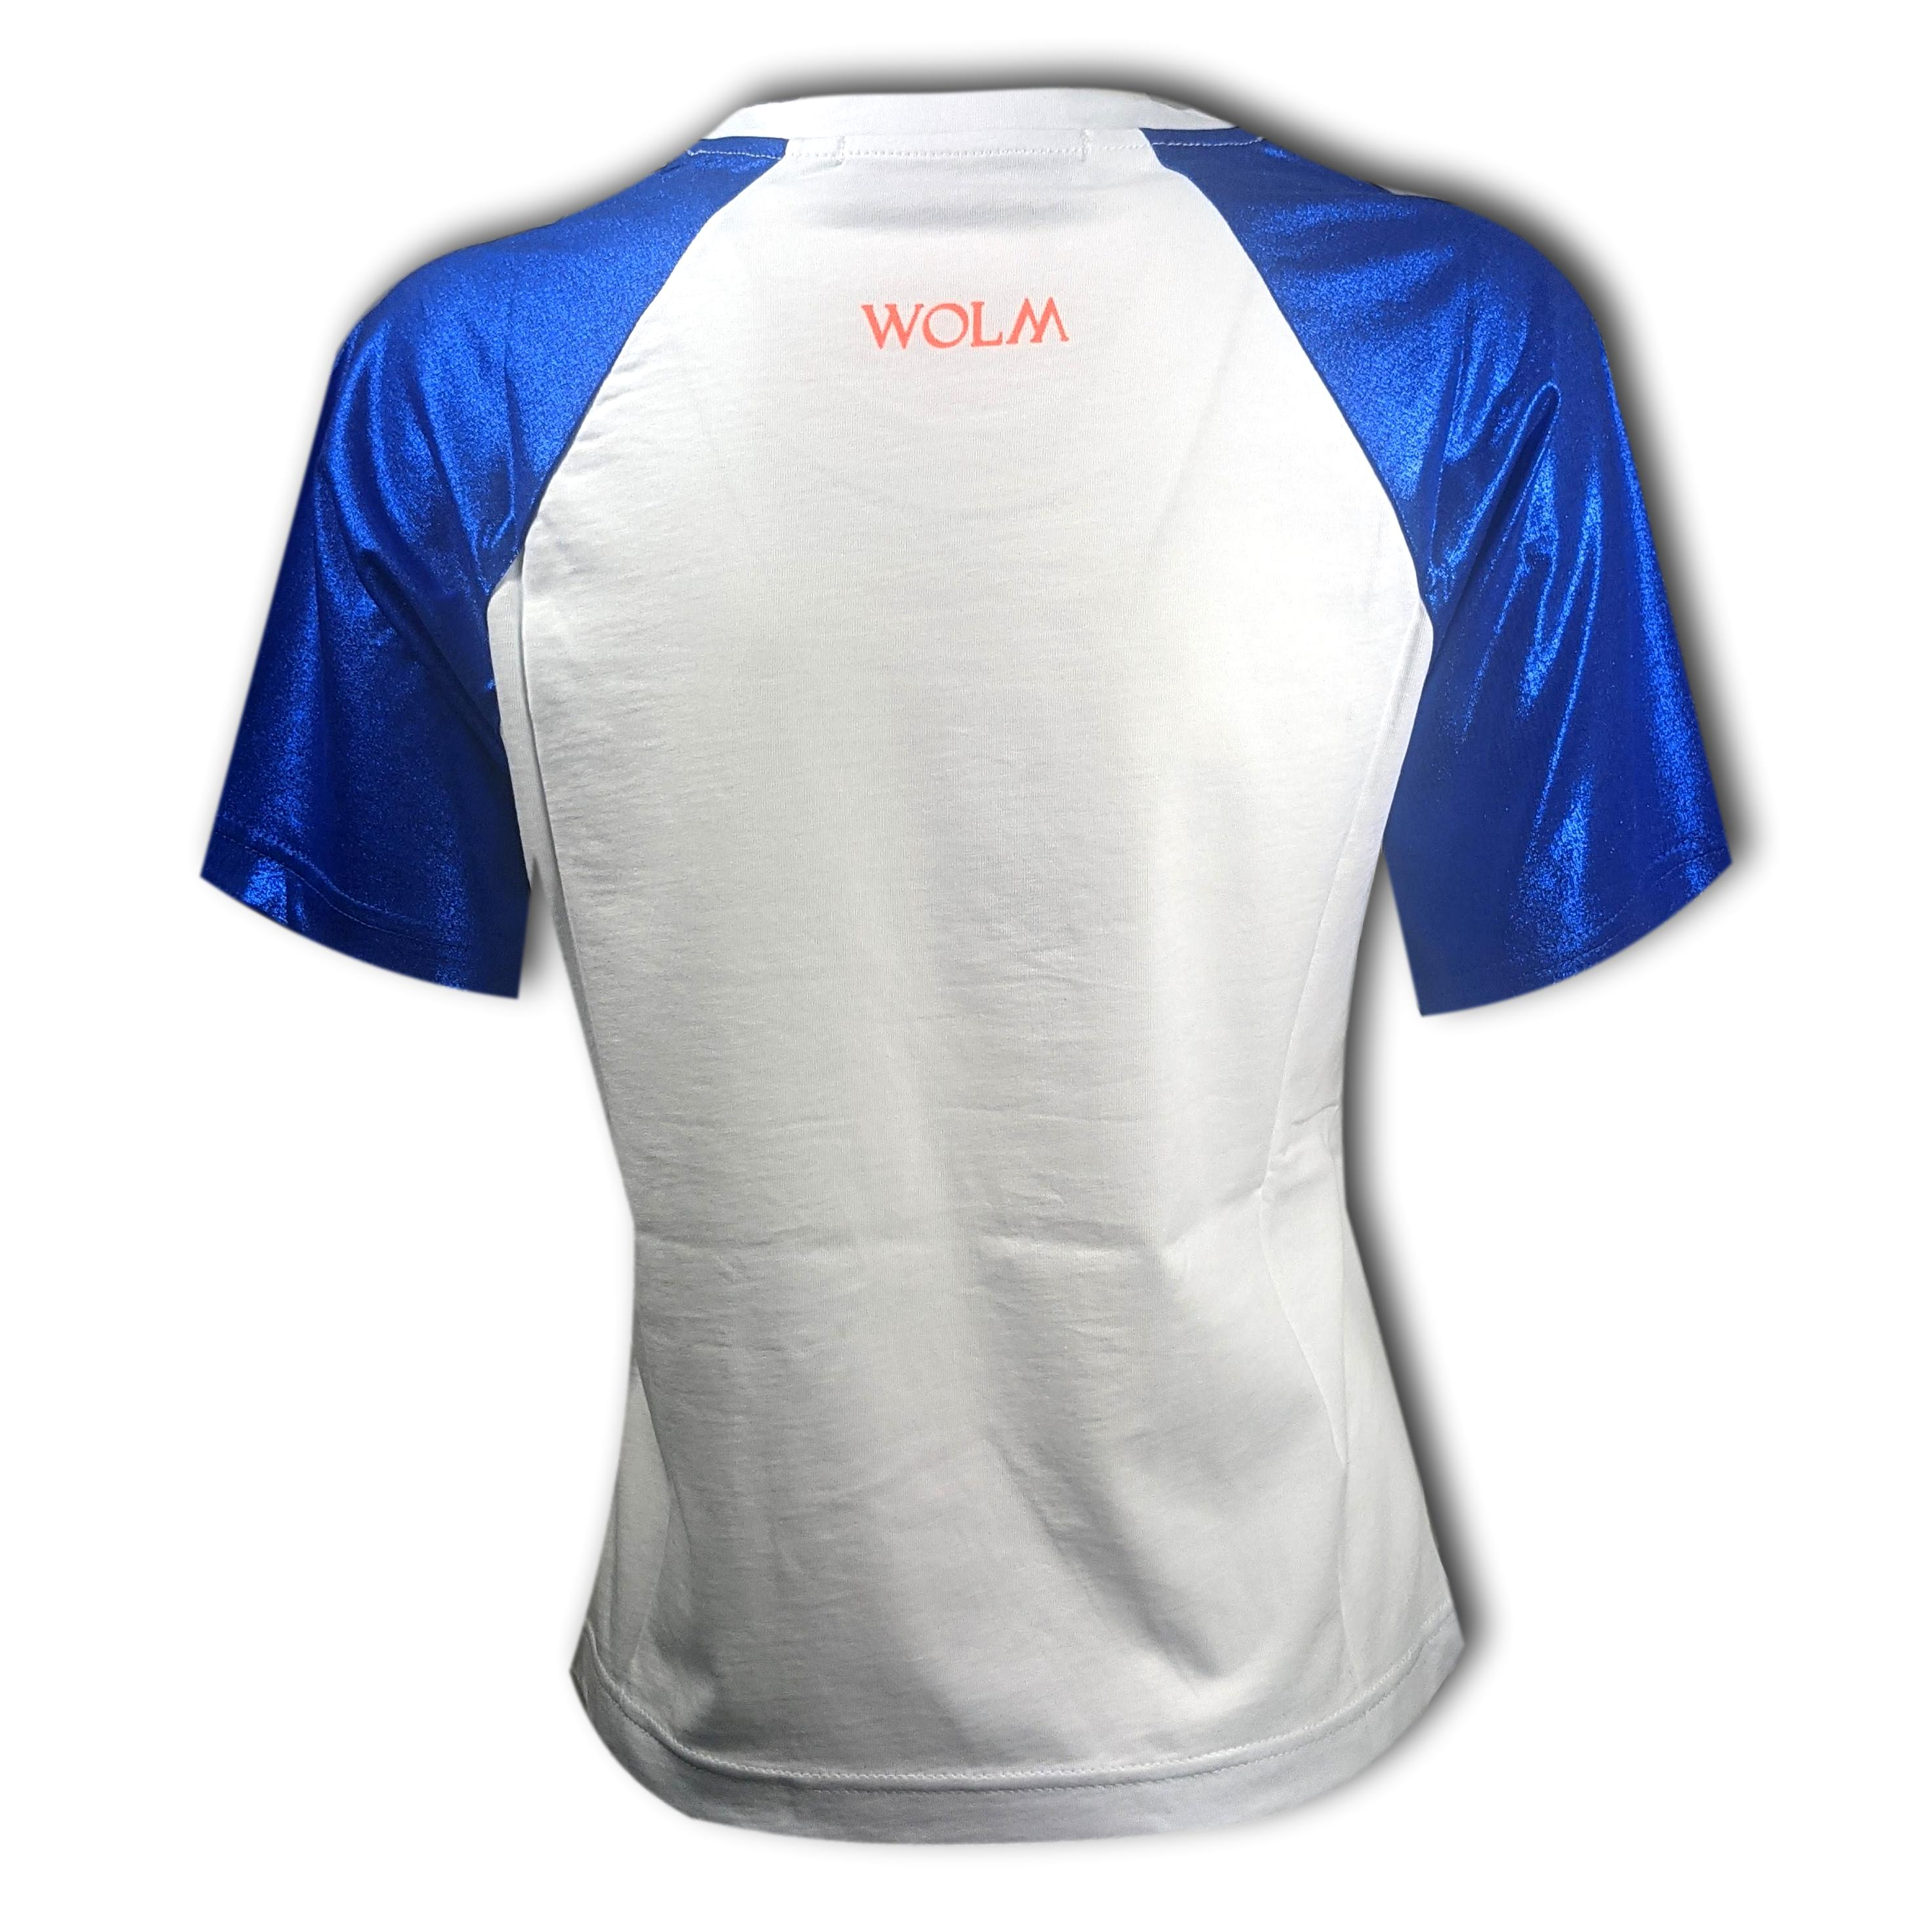 T-SHIRT WOLM WOLM | T-shirt | PEW15230